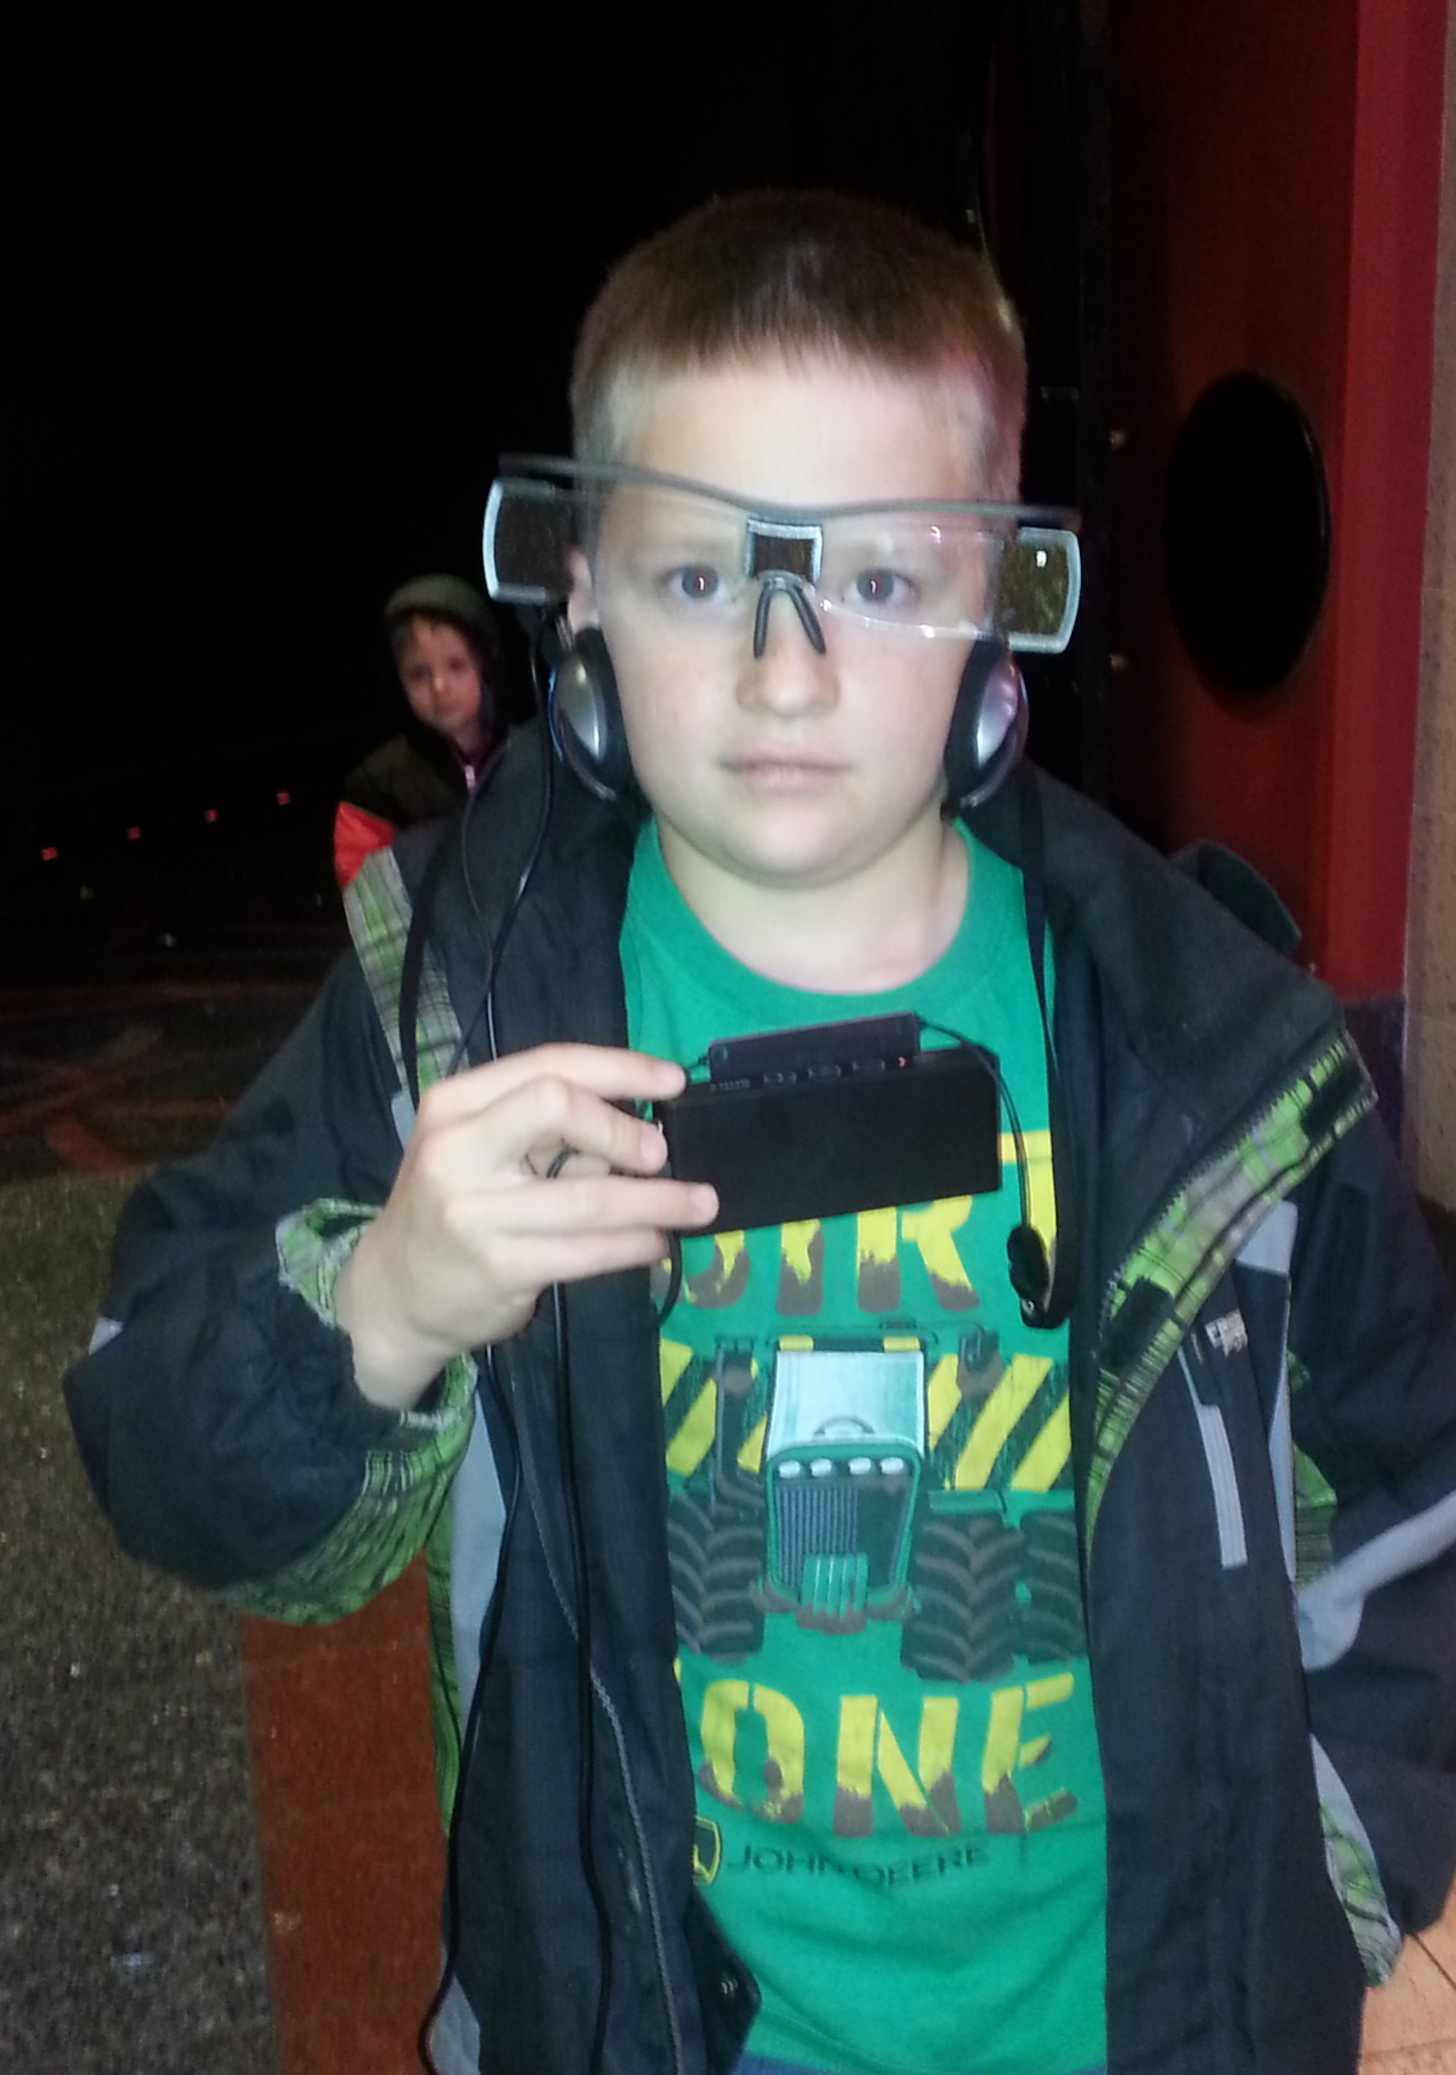 My Nephew modeling the captioning glasses and headphones at Edwards in Idaho Falls after watching Star Wars VII.